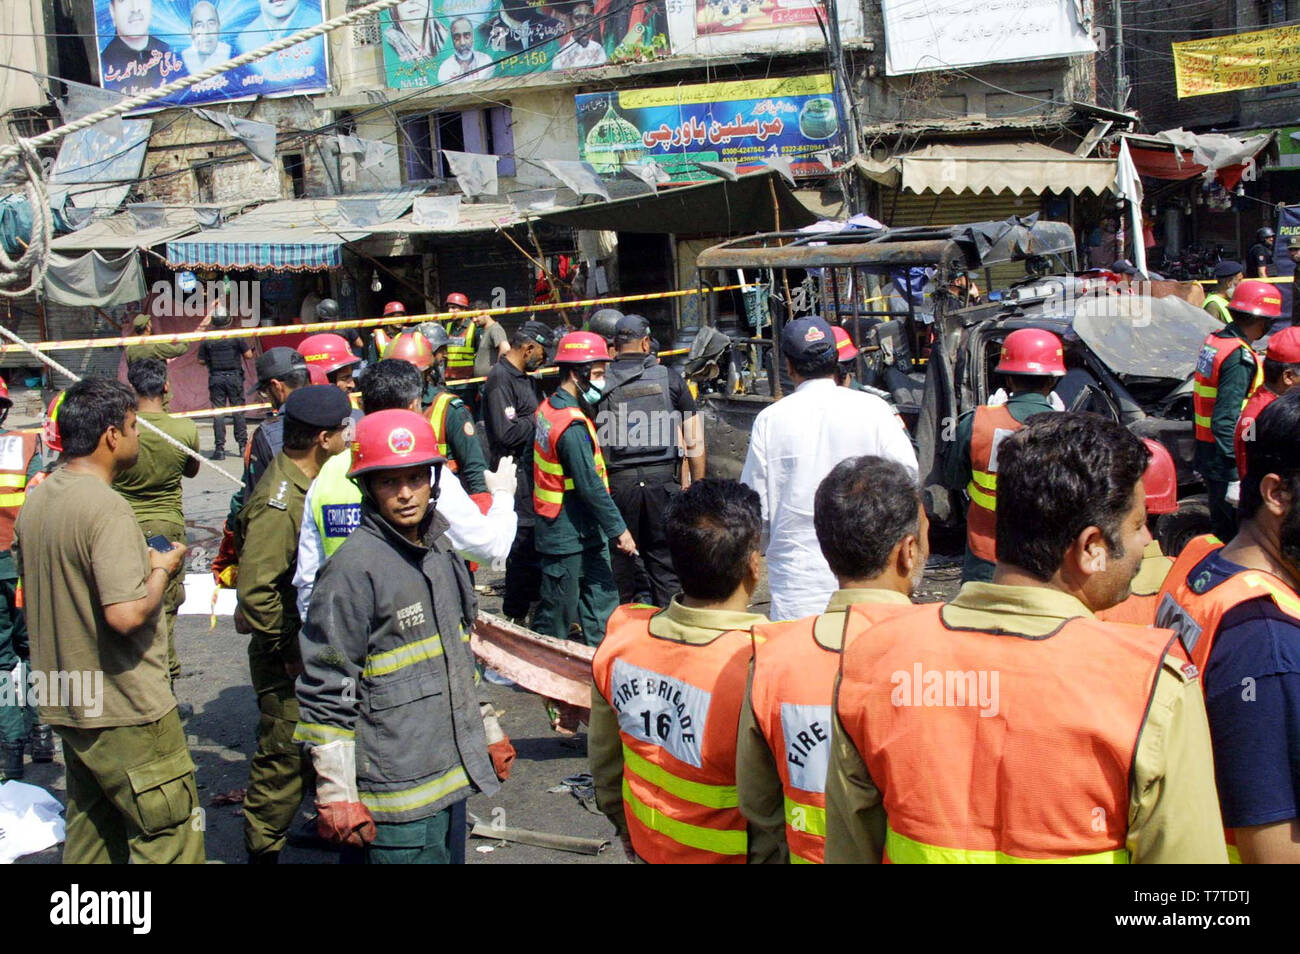 Views of venue after bomb blast occurred outside Data Darbar in Lahore on Wednesday, May 08, 2019. At least eight people five policemen and three civilians were killed and 26 others injured in what officials described as a suicide bombing targeting an Elite Force van detailed to the security of the Data Darbar shrine in Lahore. - Stock Image